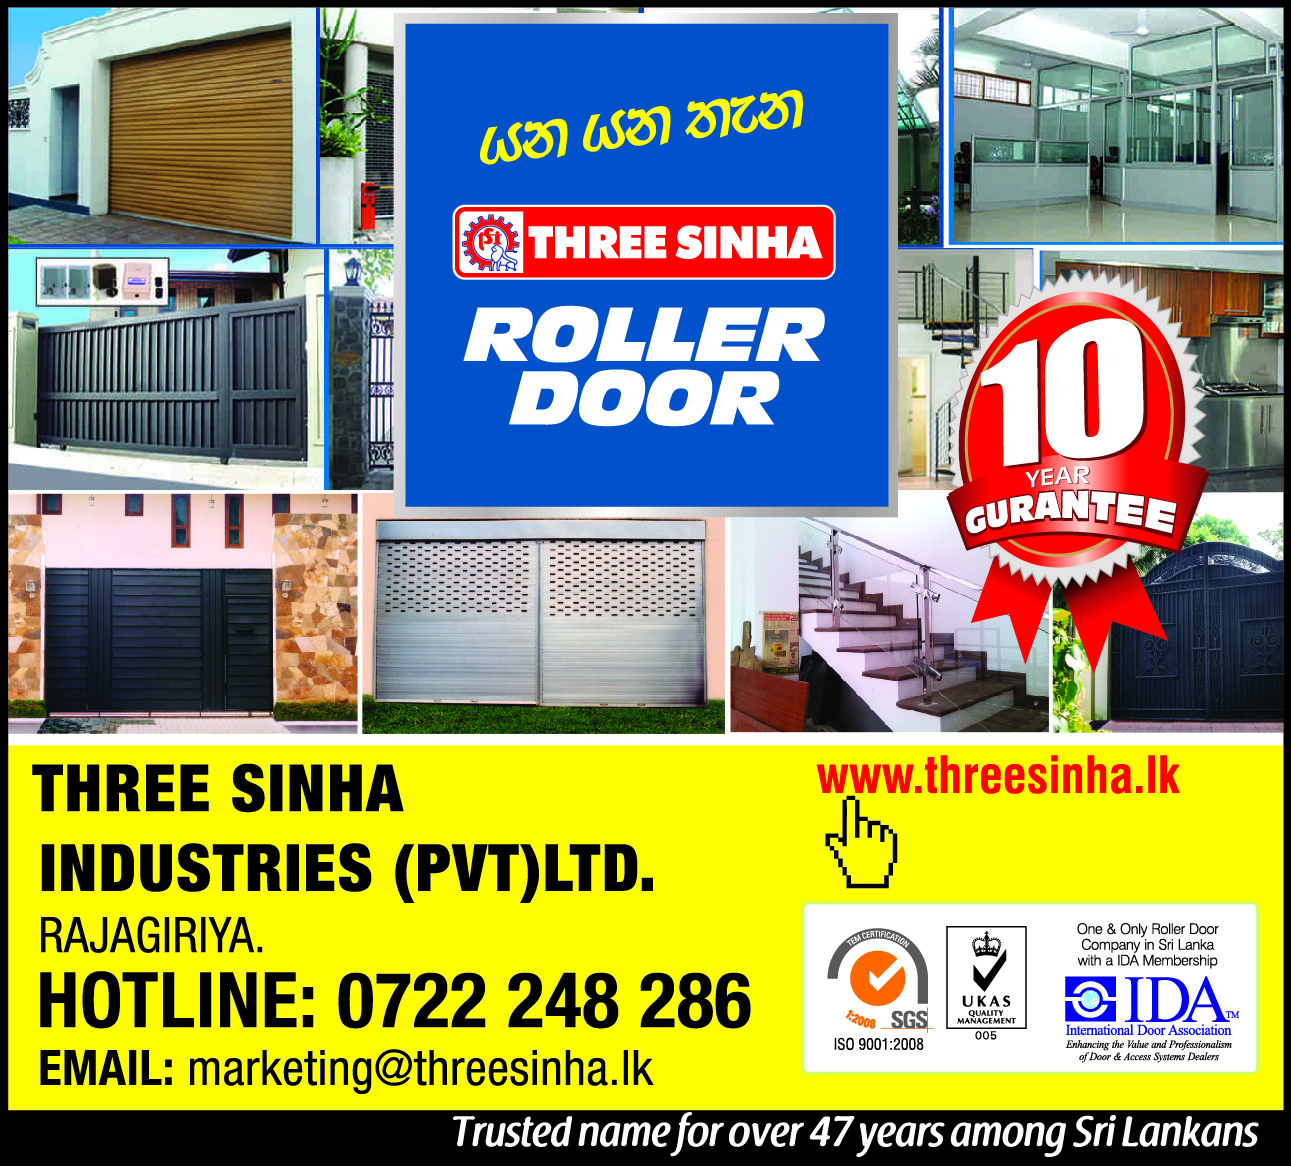 Doors - Ad 04 - Three Sinha Industries